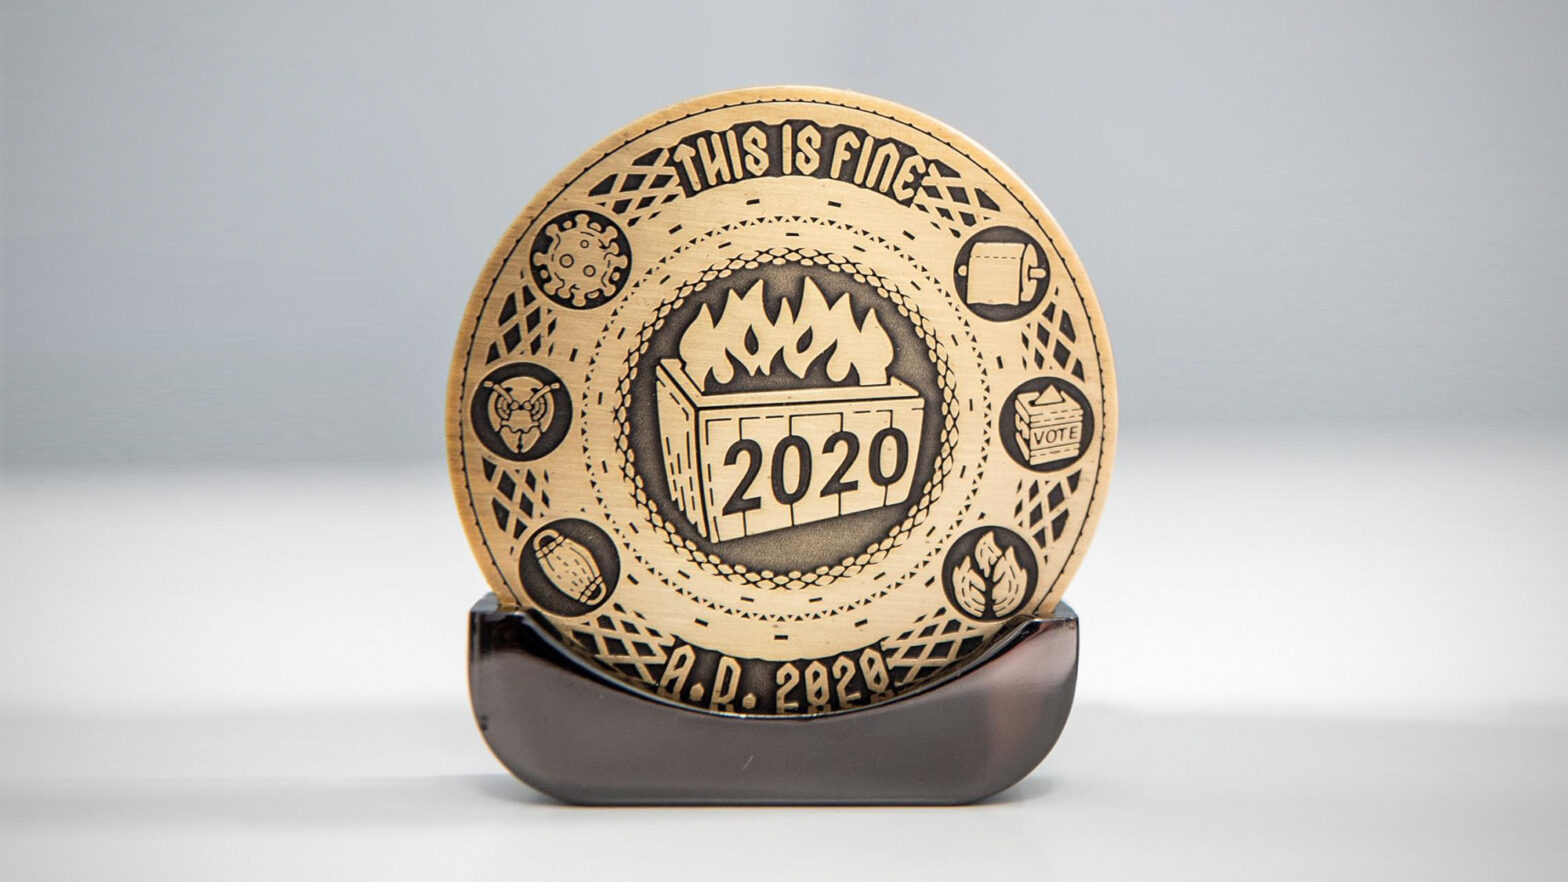 2020 Commemorative Coin by Antsy Labs